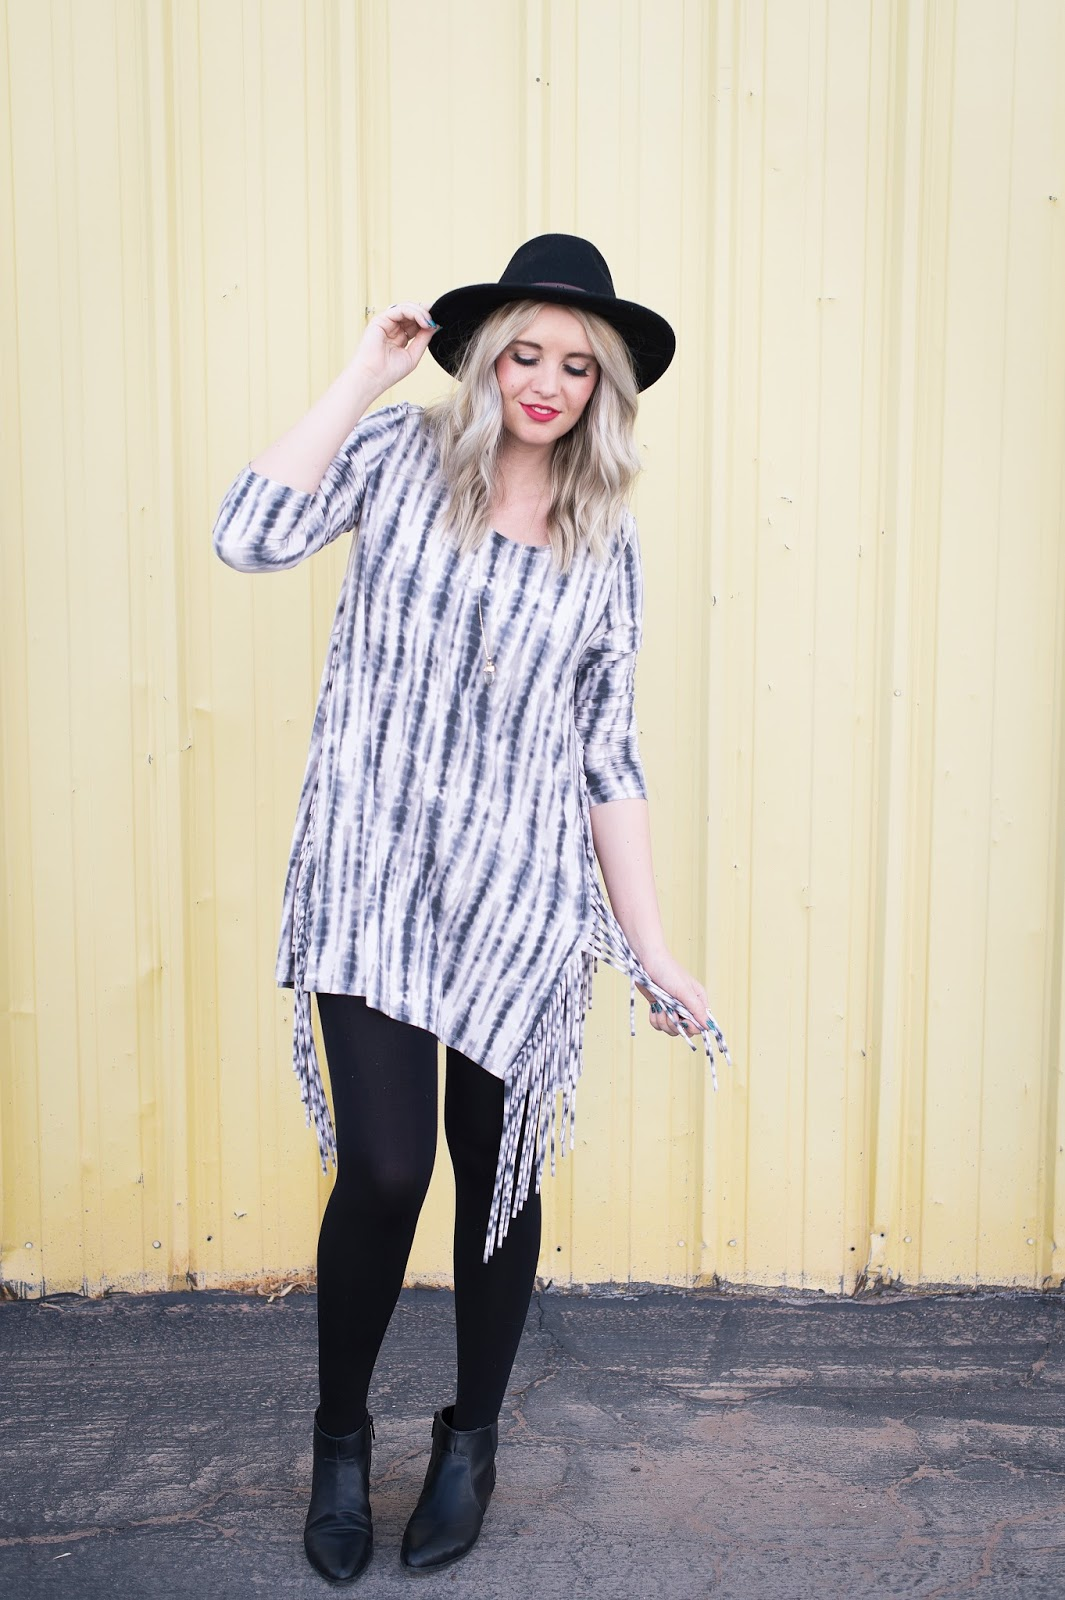 Modest, Fashion Blogger, Tie Dye, Bohme